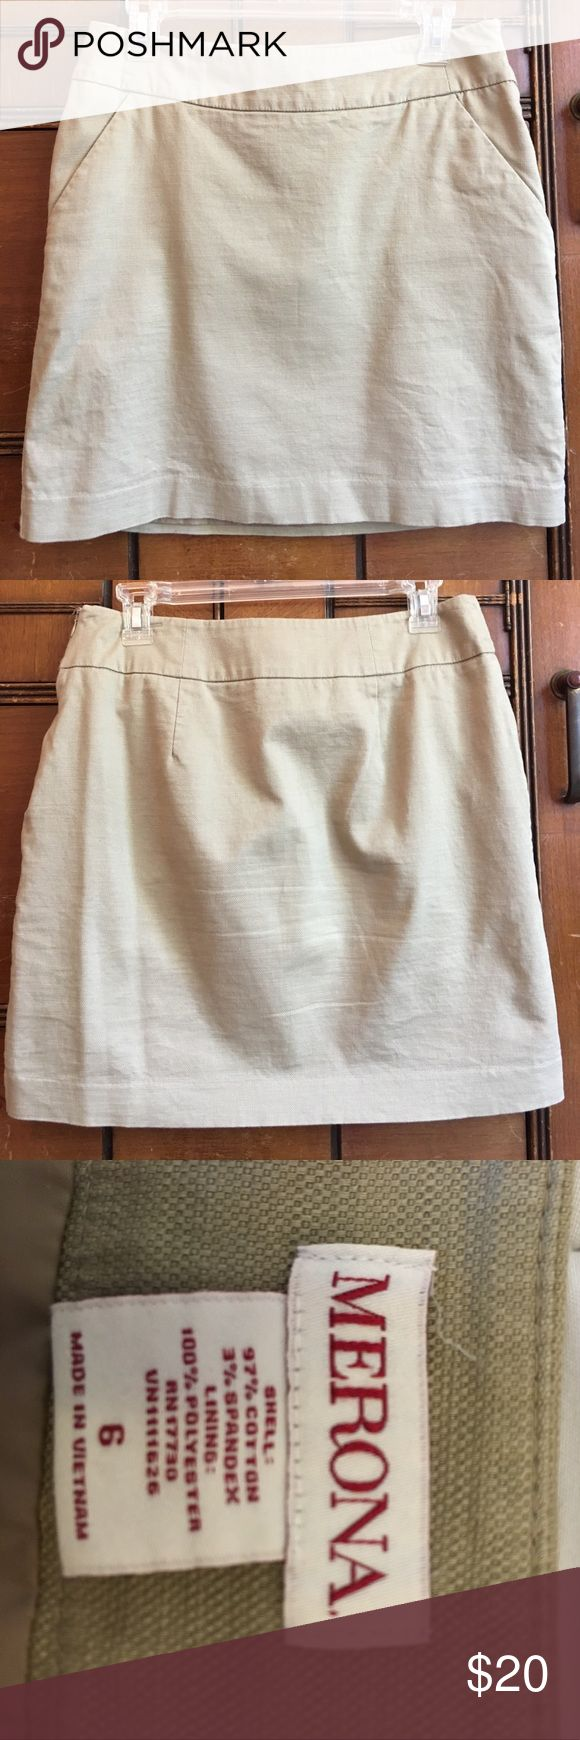 Tan Pencil Skirt Tan double-lined Merona pencil skirt in EUC perfect for work! Pocket option in the front. No stains, rips, or snags. Merona Skirts Pencil